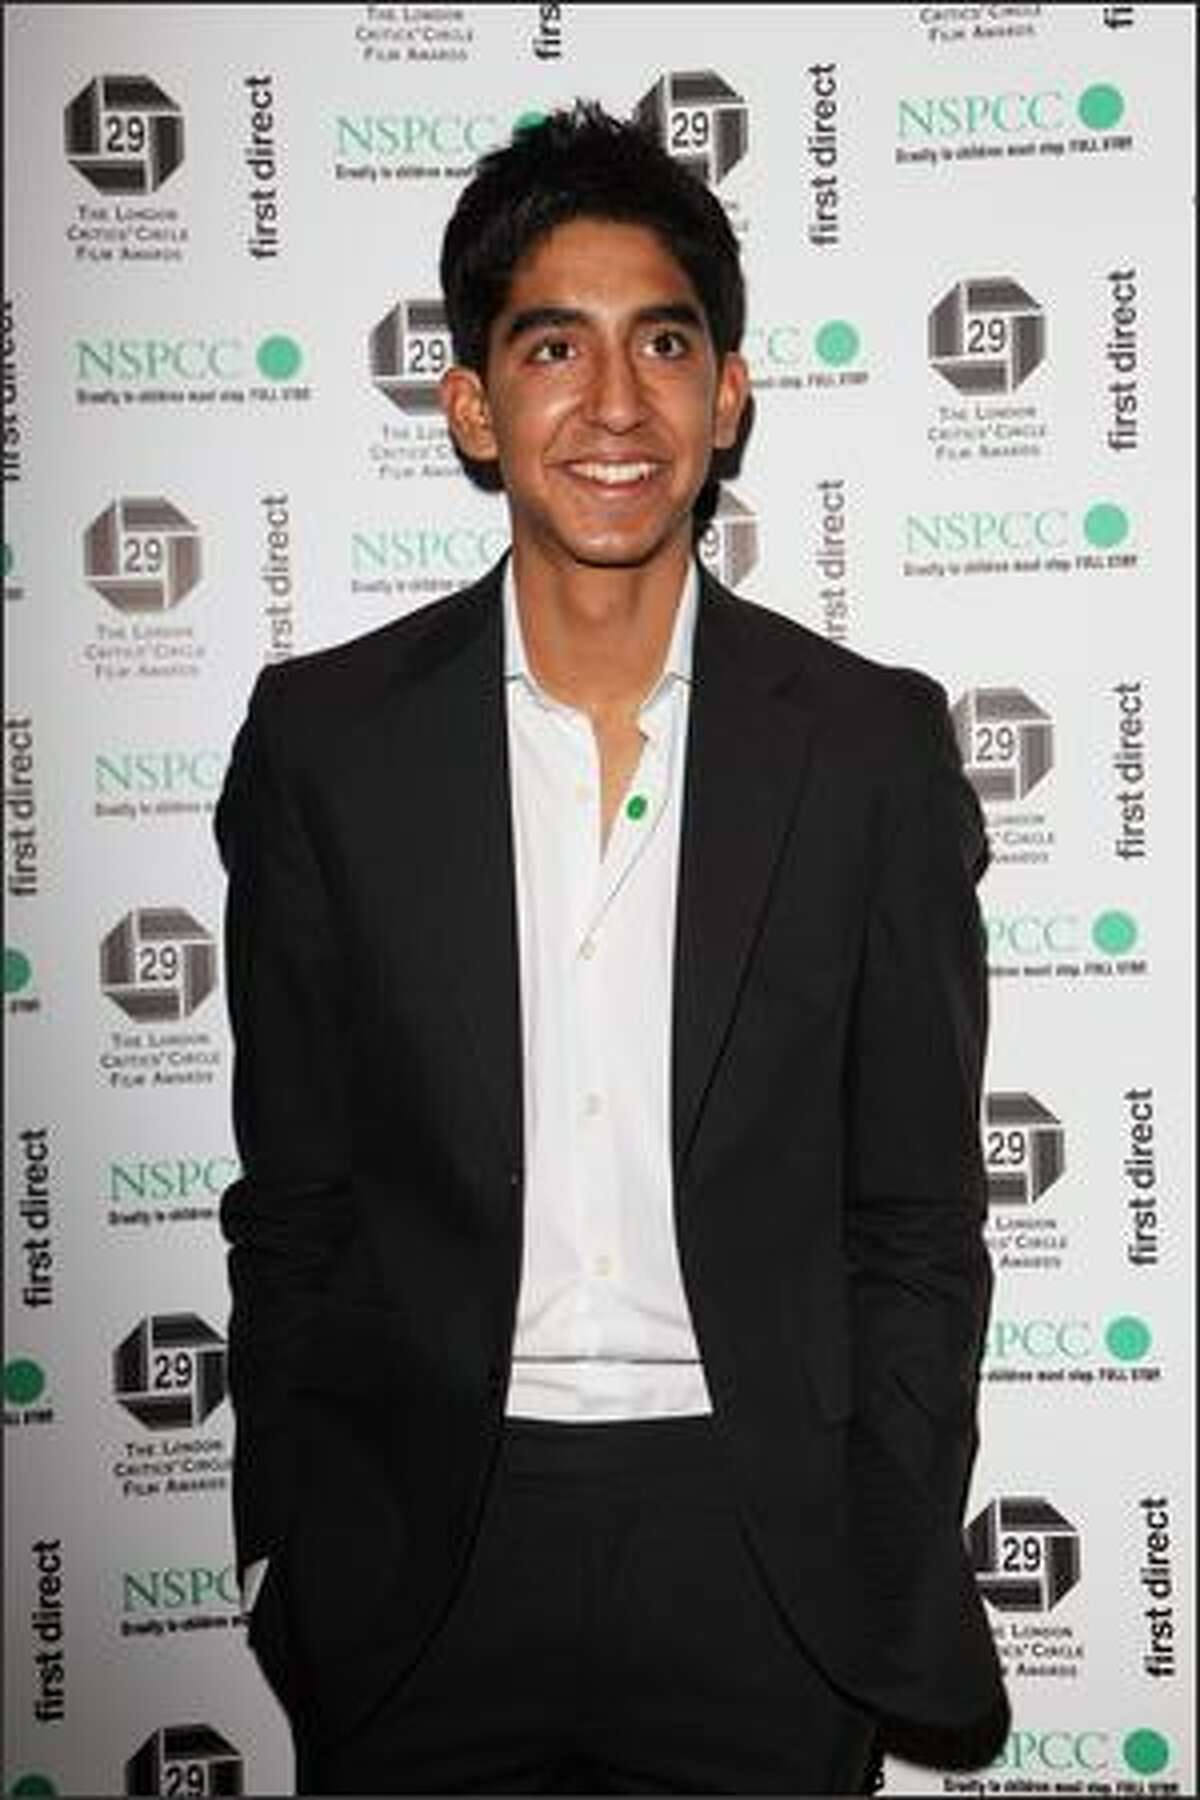 Actor Dev Patel attends The London Critics' Circle Film Awards 2009 at the Grosvenor House Hotel on Monday in London.